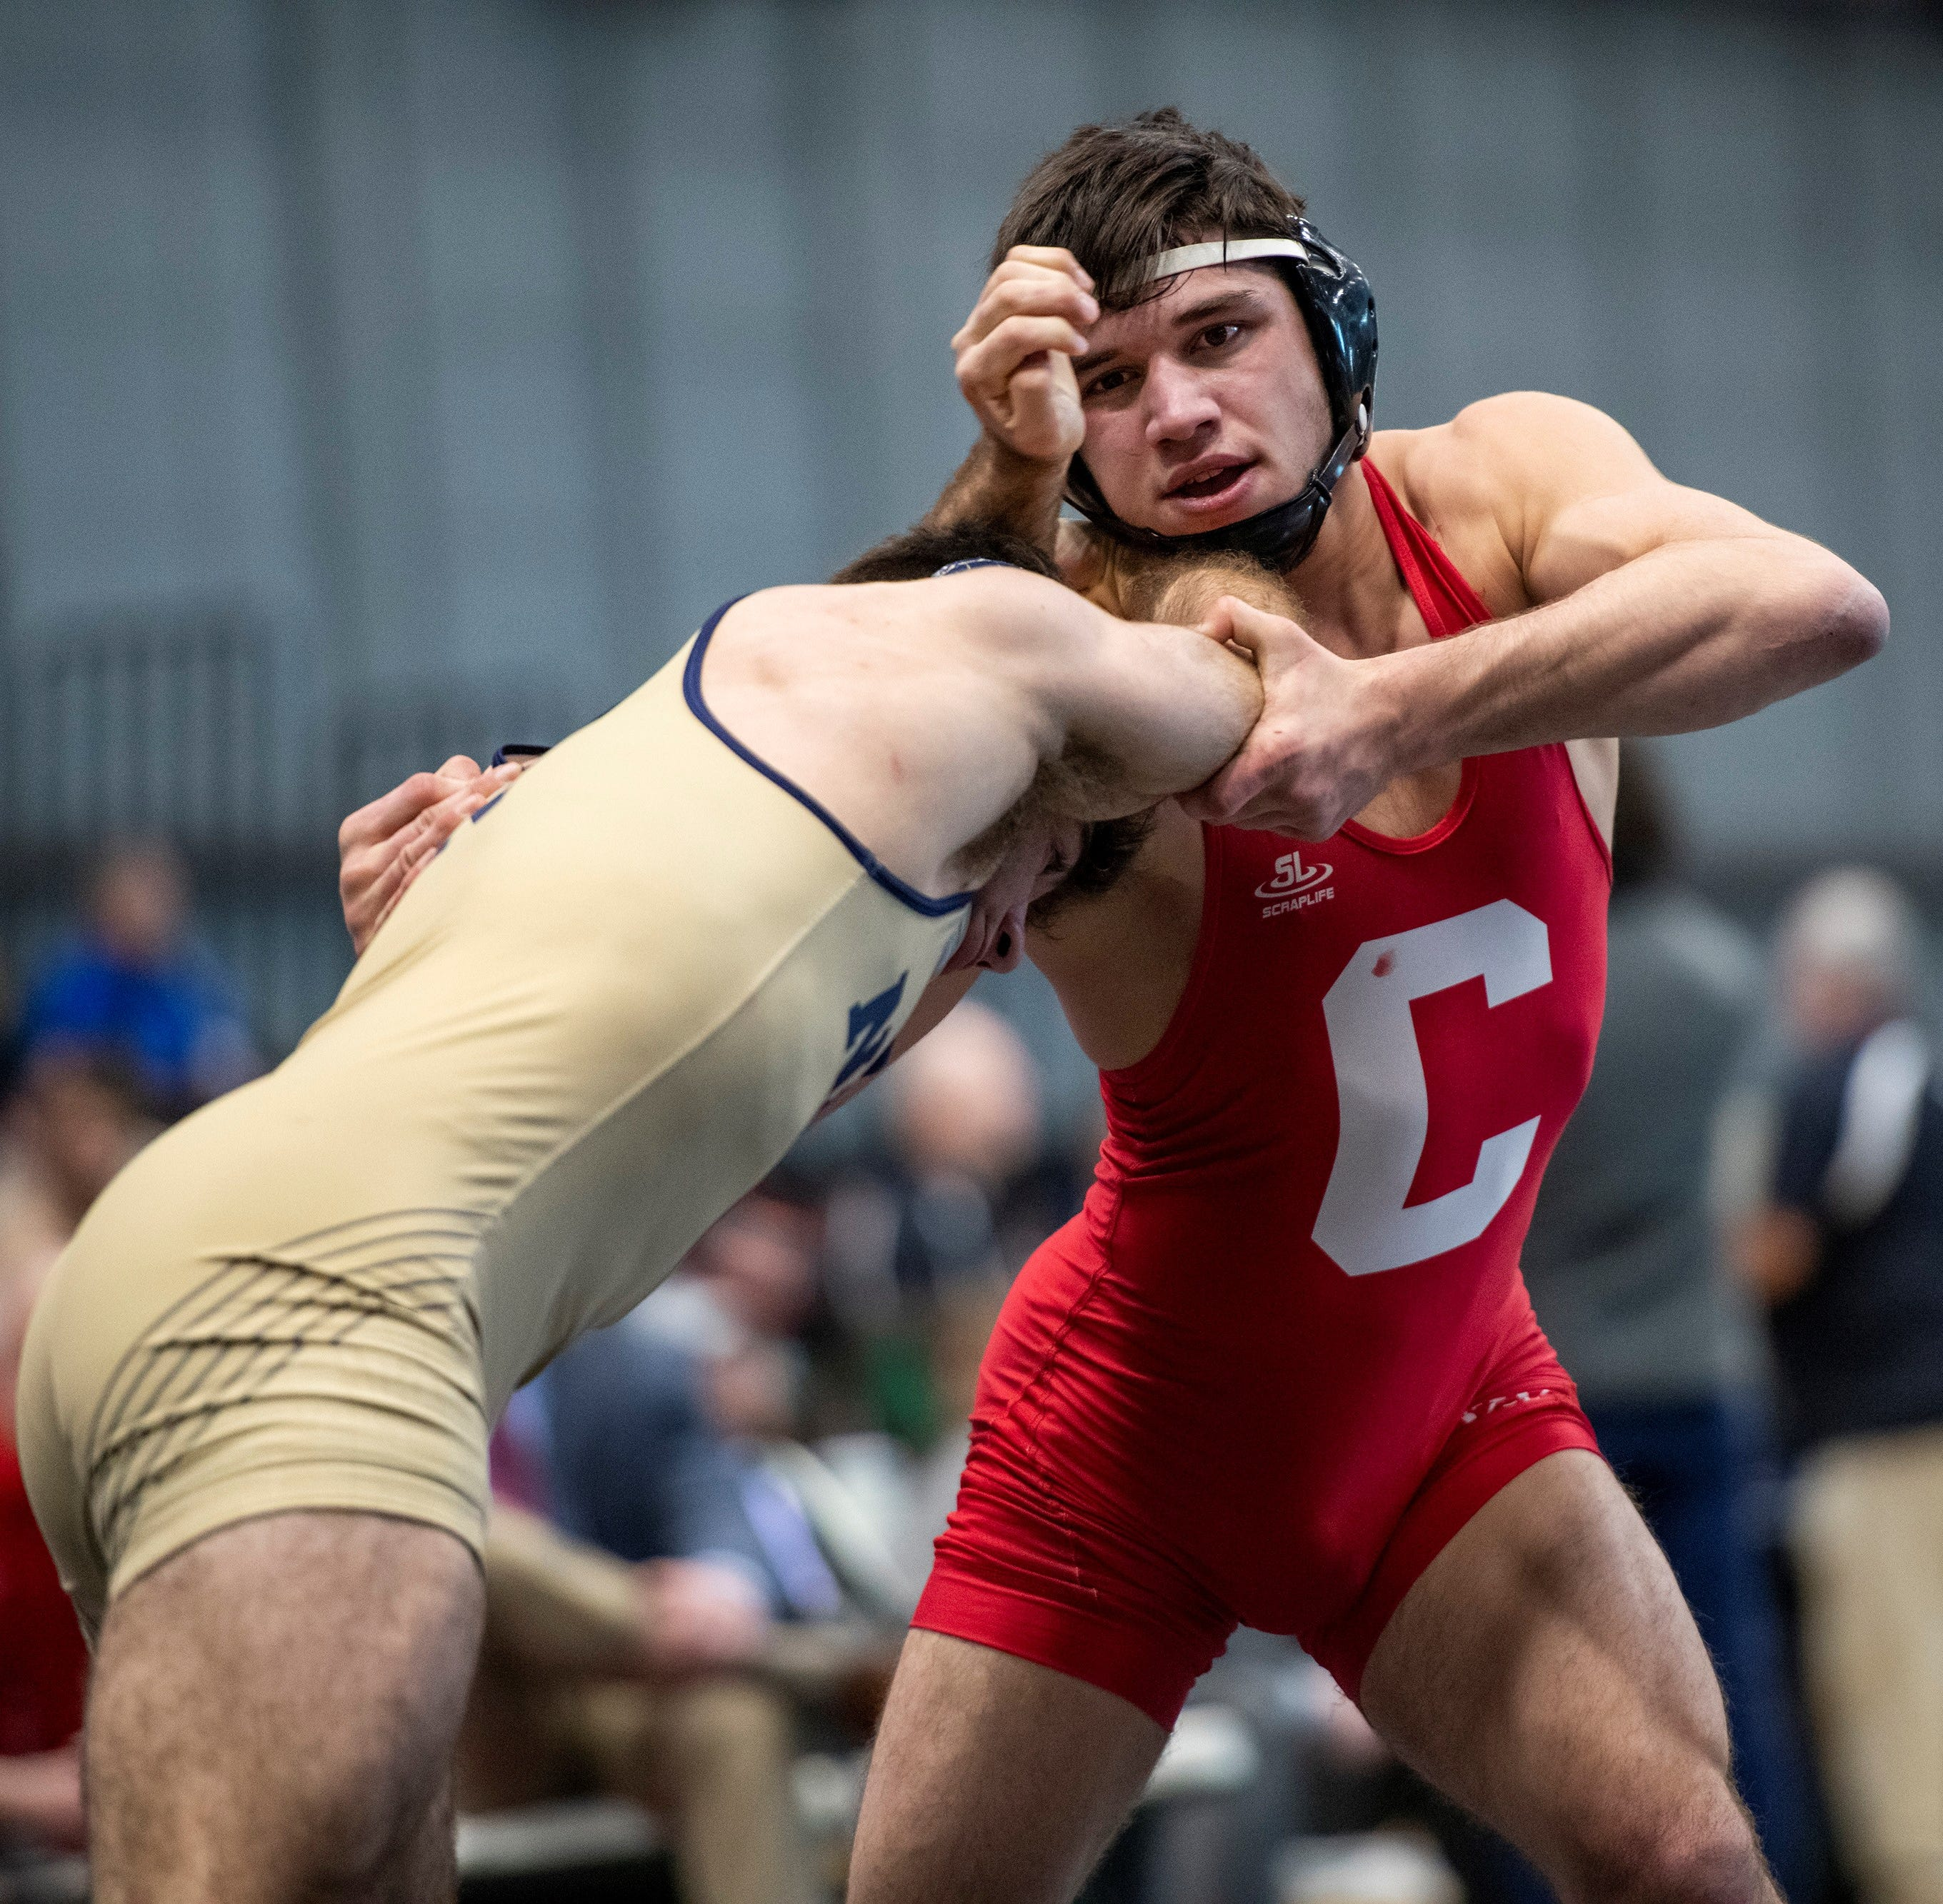 NCAA wrestling: Cornell sophomore Yianni Diakomihalis has a date with destiny